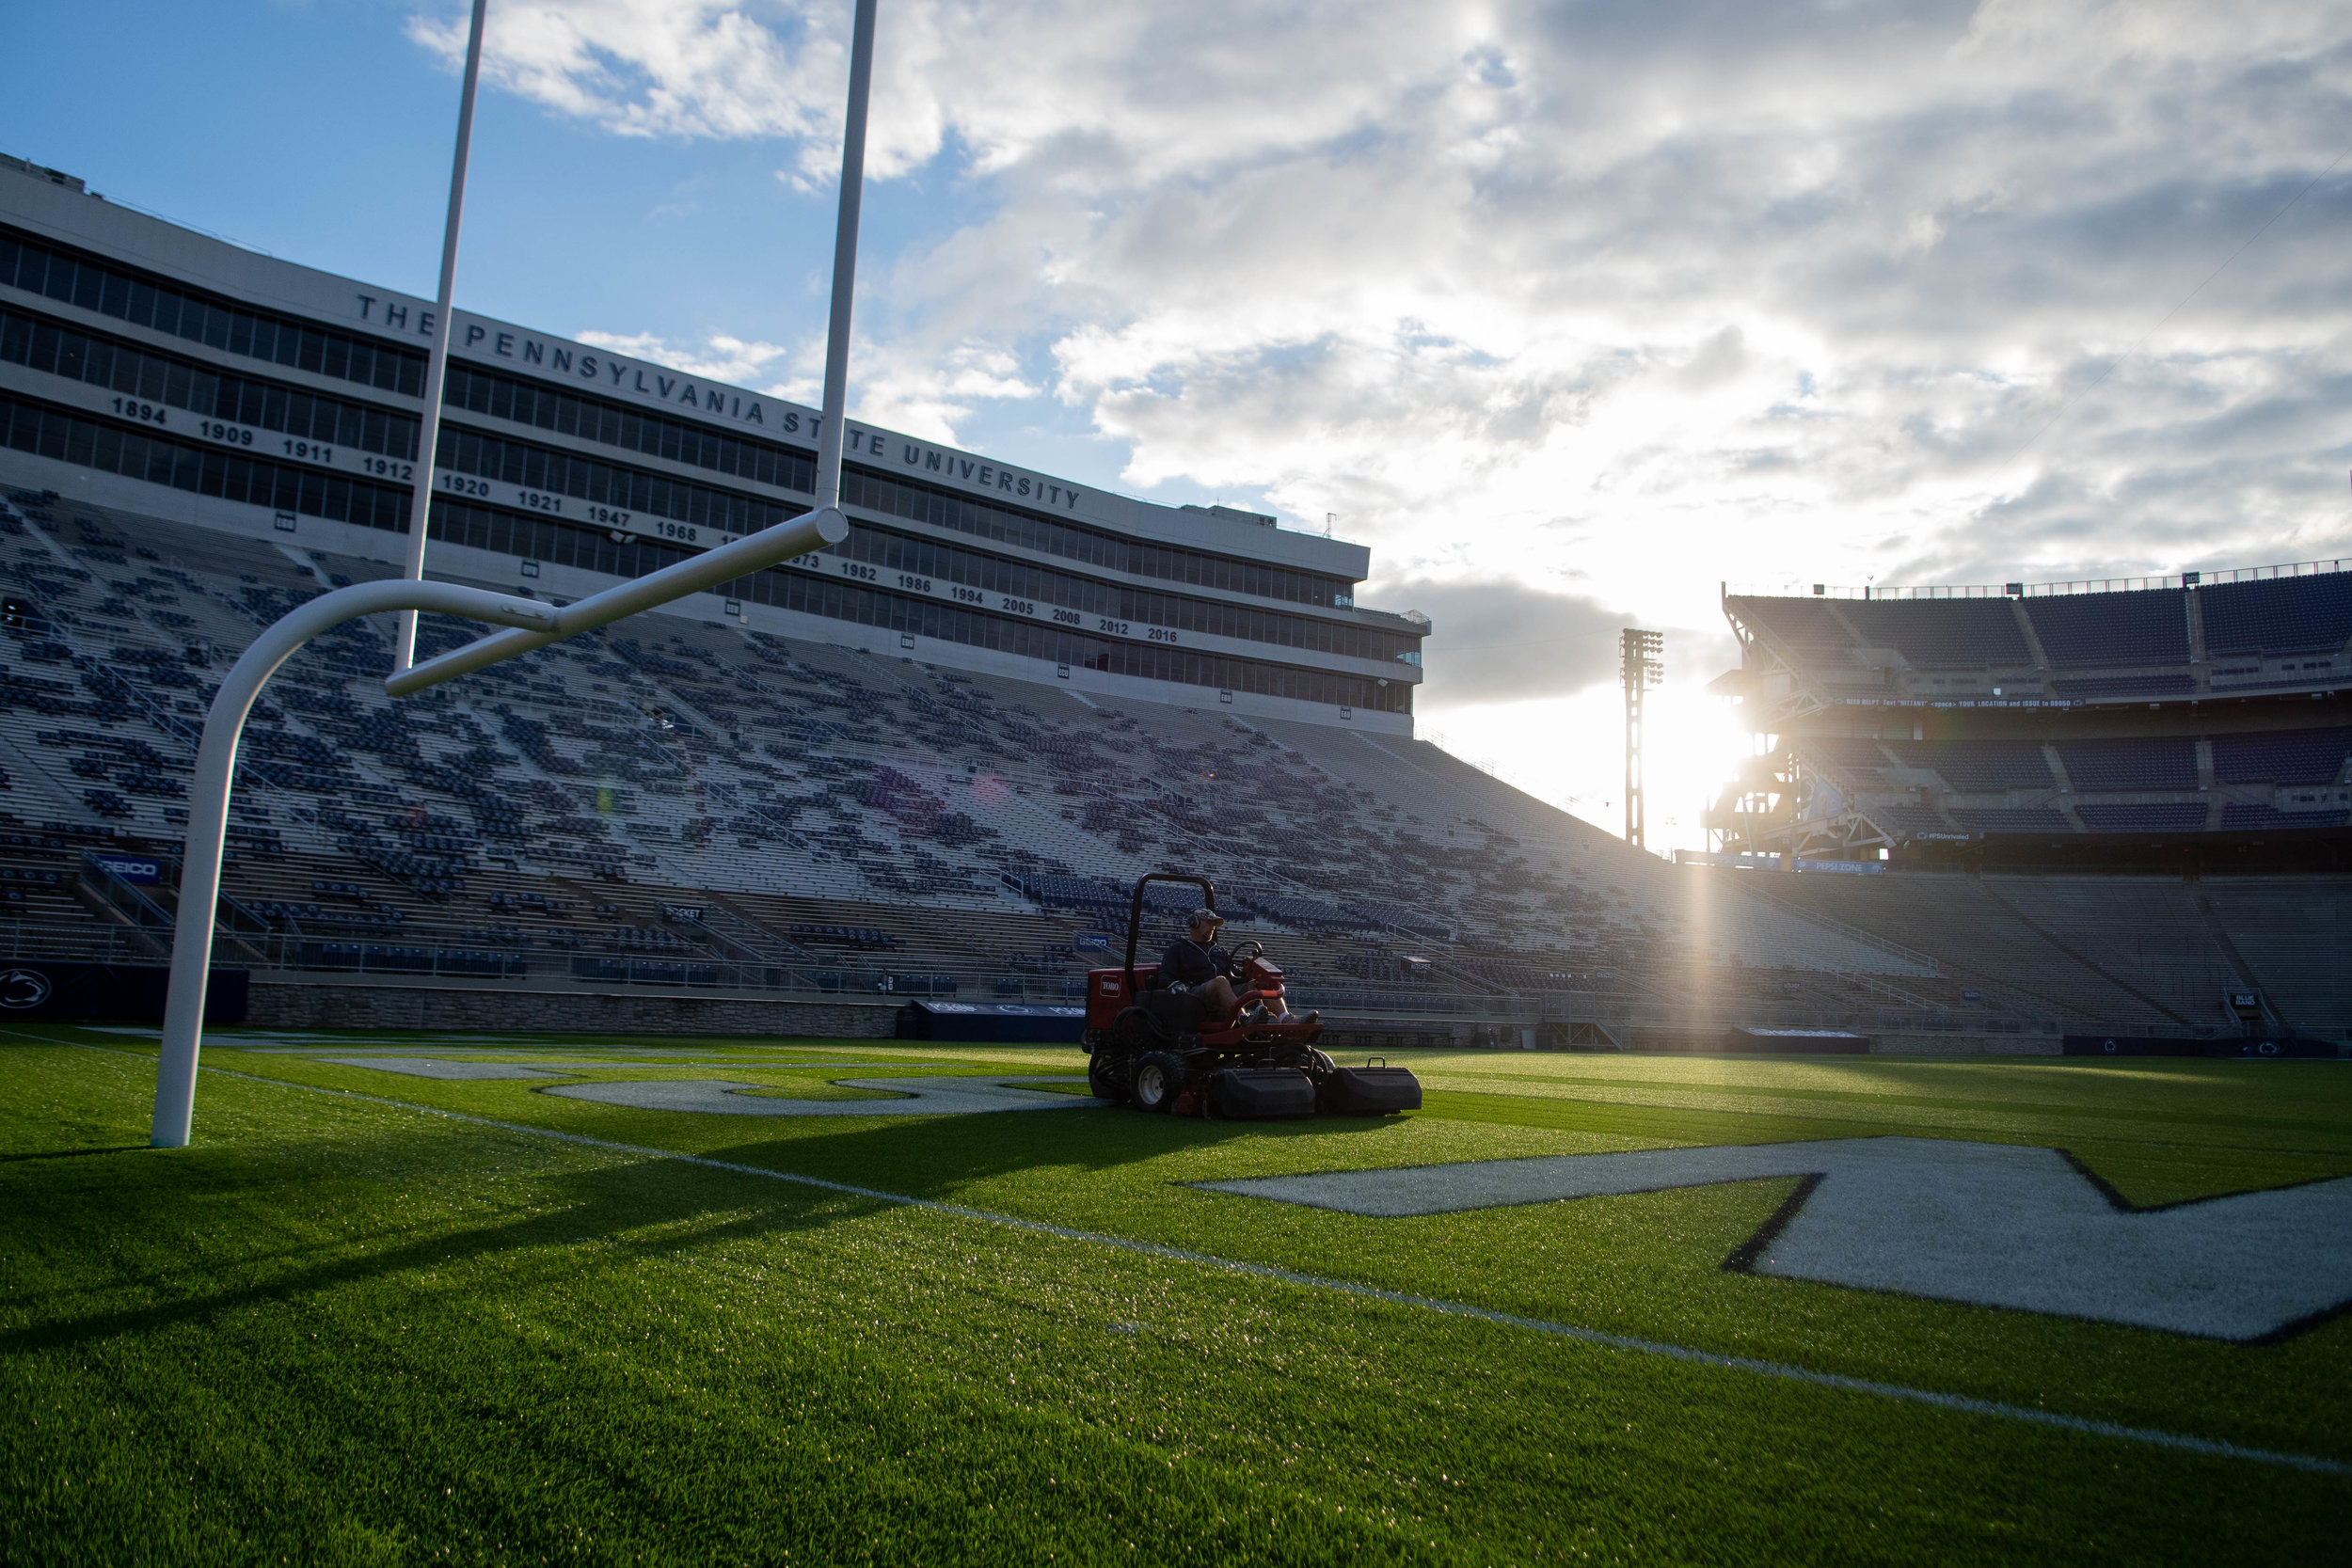 Cutting Edge - Behind the scenes of Penn State Football's most important asset––the Beaver Stadium Grounds Crew.